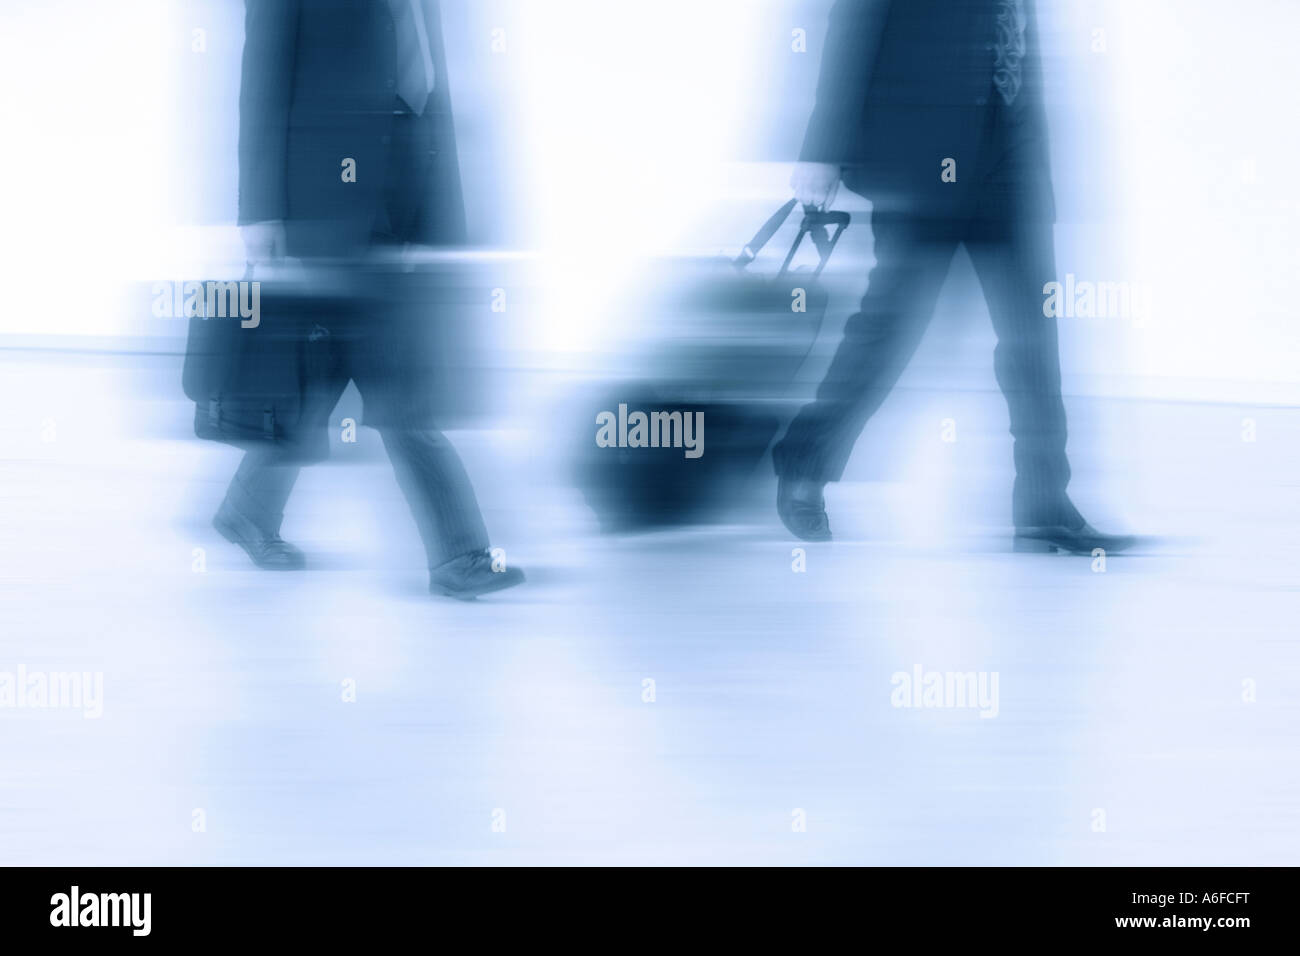 2 businessmen with luggage 2 Manager mit Gepäck - Stock Image